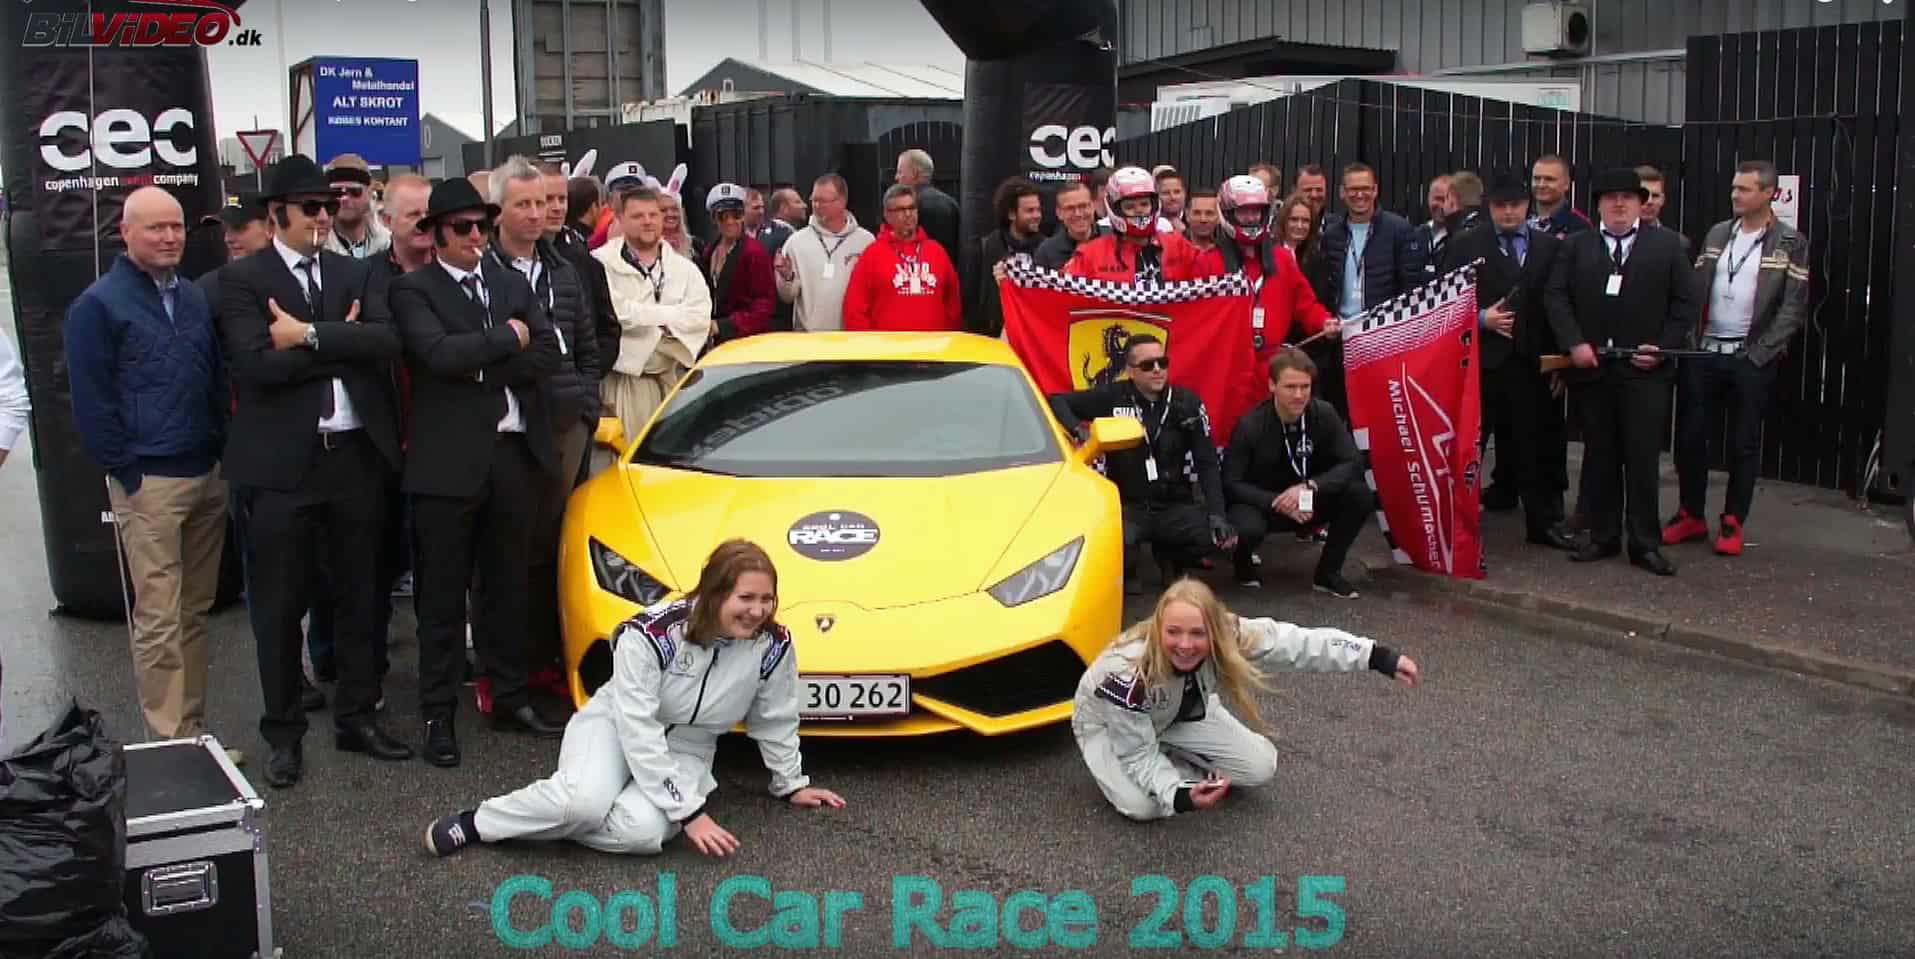 Cool Car Race 2015